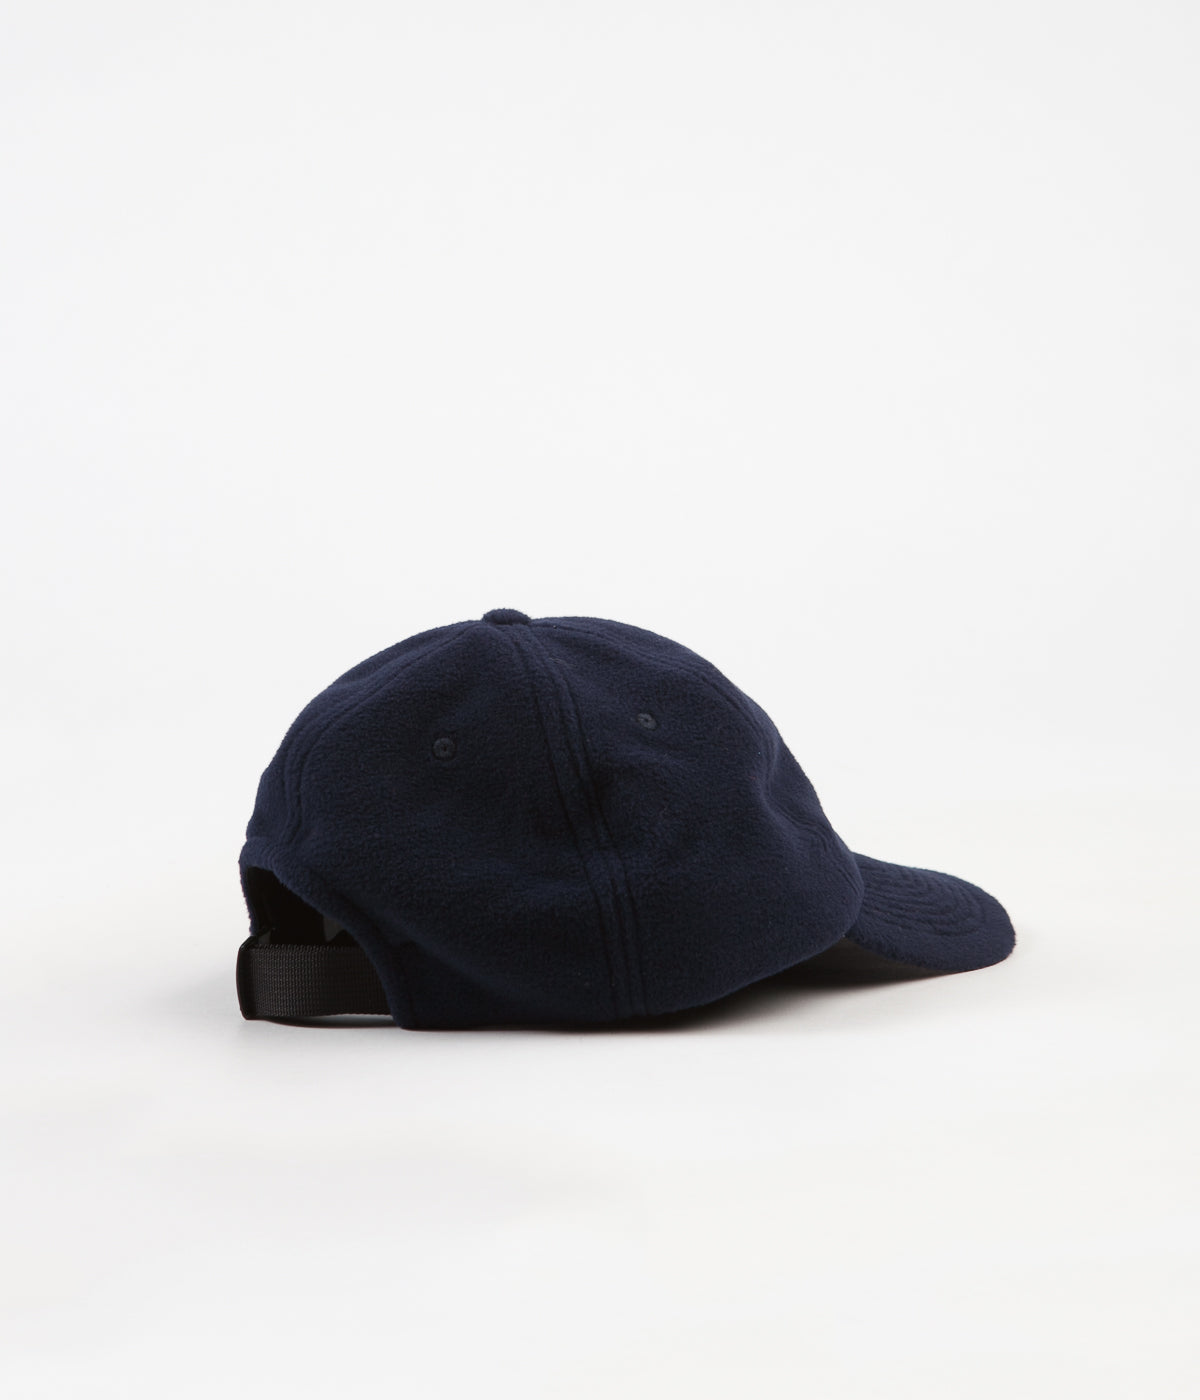 Polar Fleece Cap - Navy